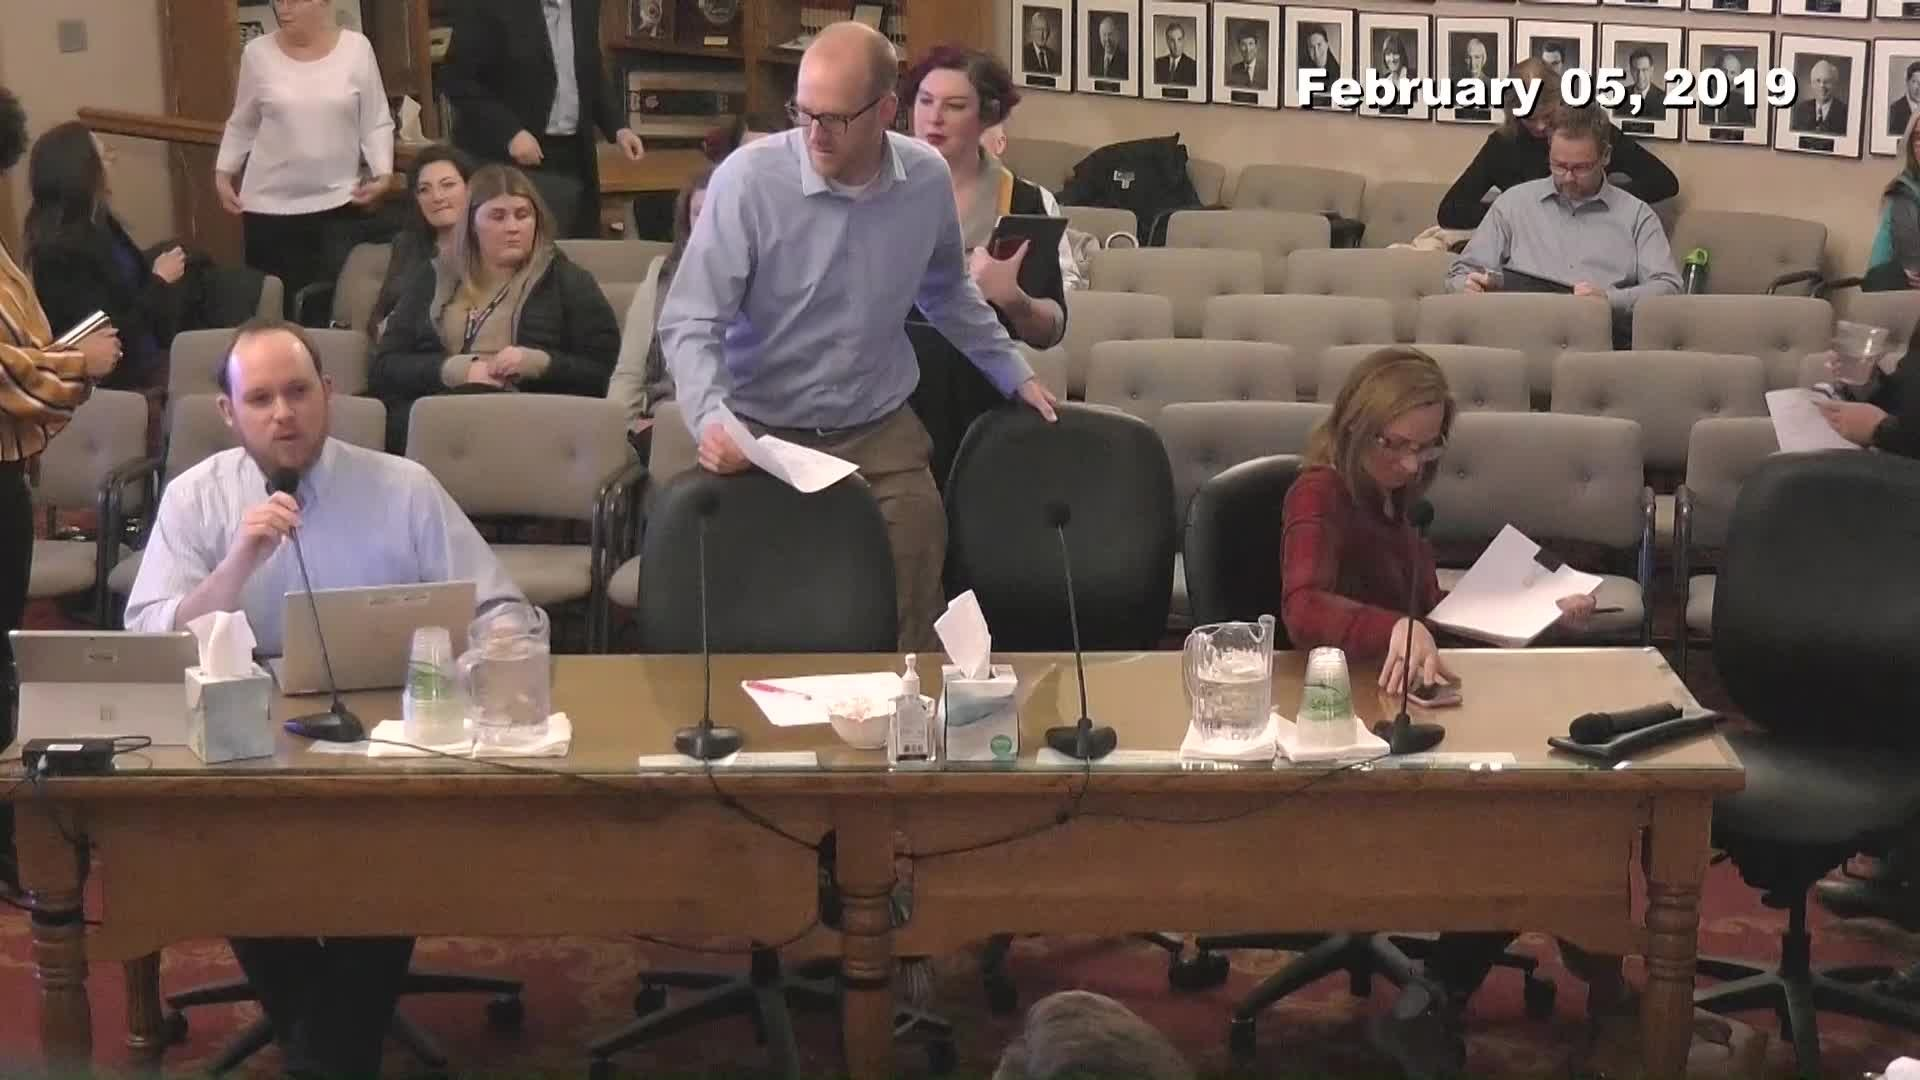 City Council Work Session - 02/05/2019